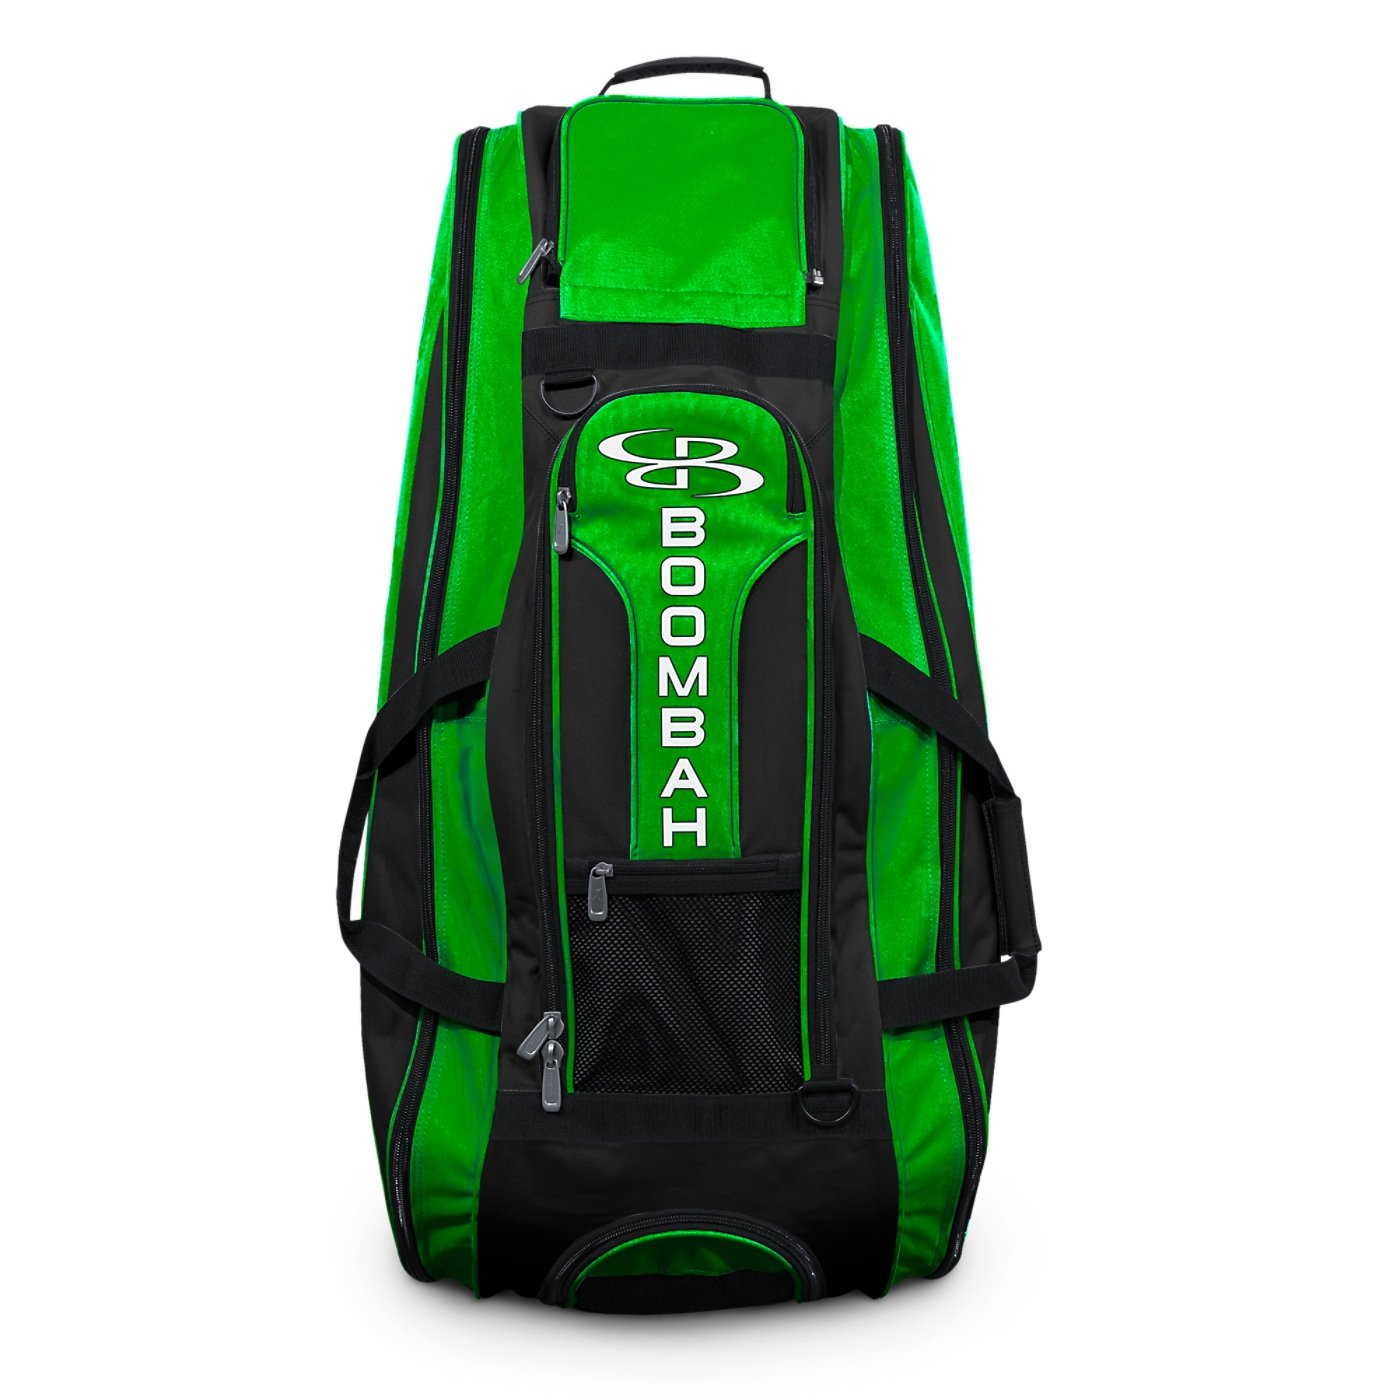 Boombah Beast Baseball/Softball Bat Bag - 40'' x 14'' x 13'' - Black/Lime Green - Holds 8 Bats, Glove & Shoe Compartments by Boombah (Image #3)